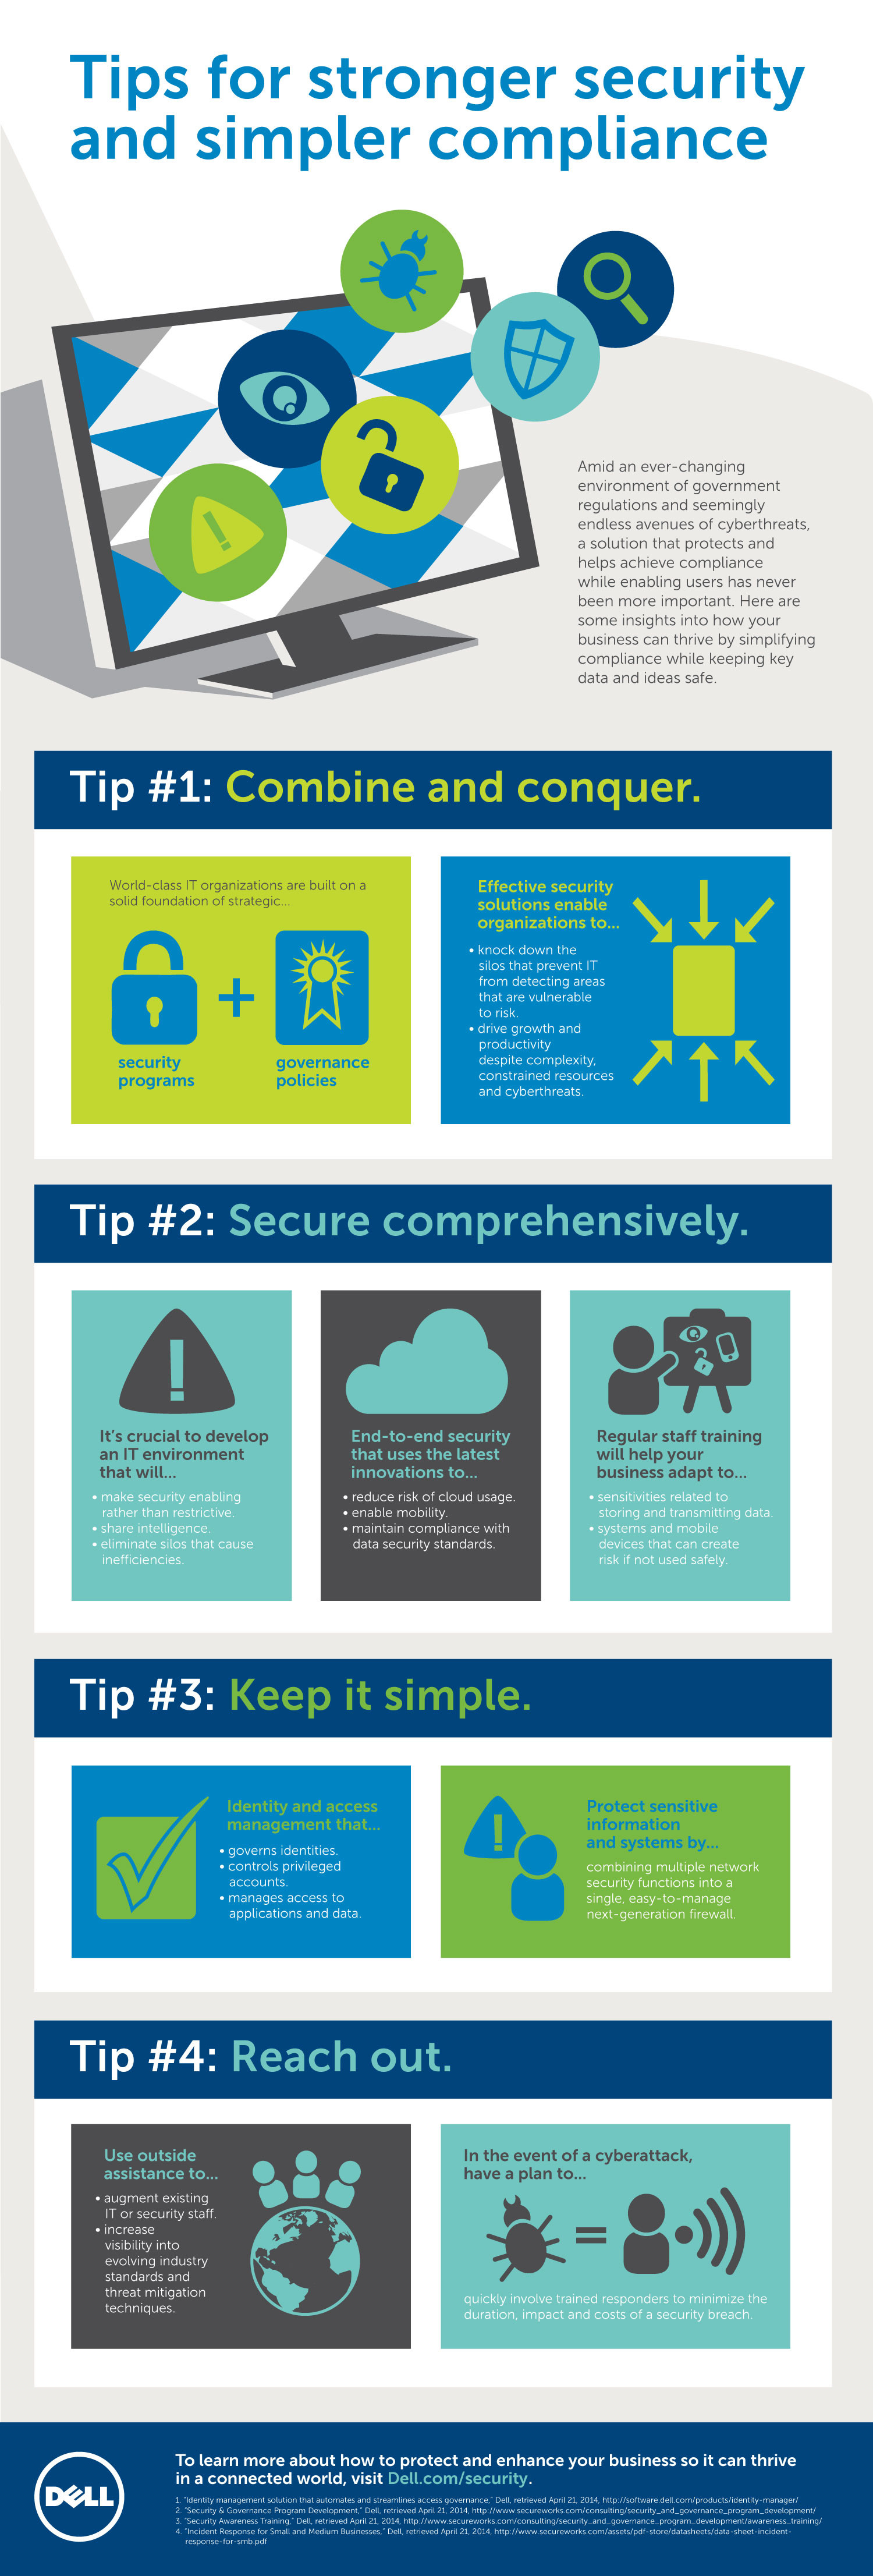 Tips for Stronger Security and Simpler Compliance Infographic